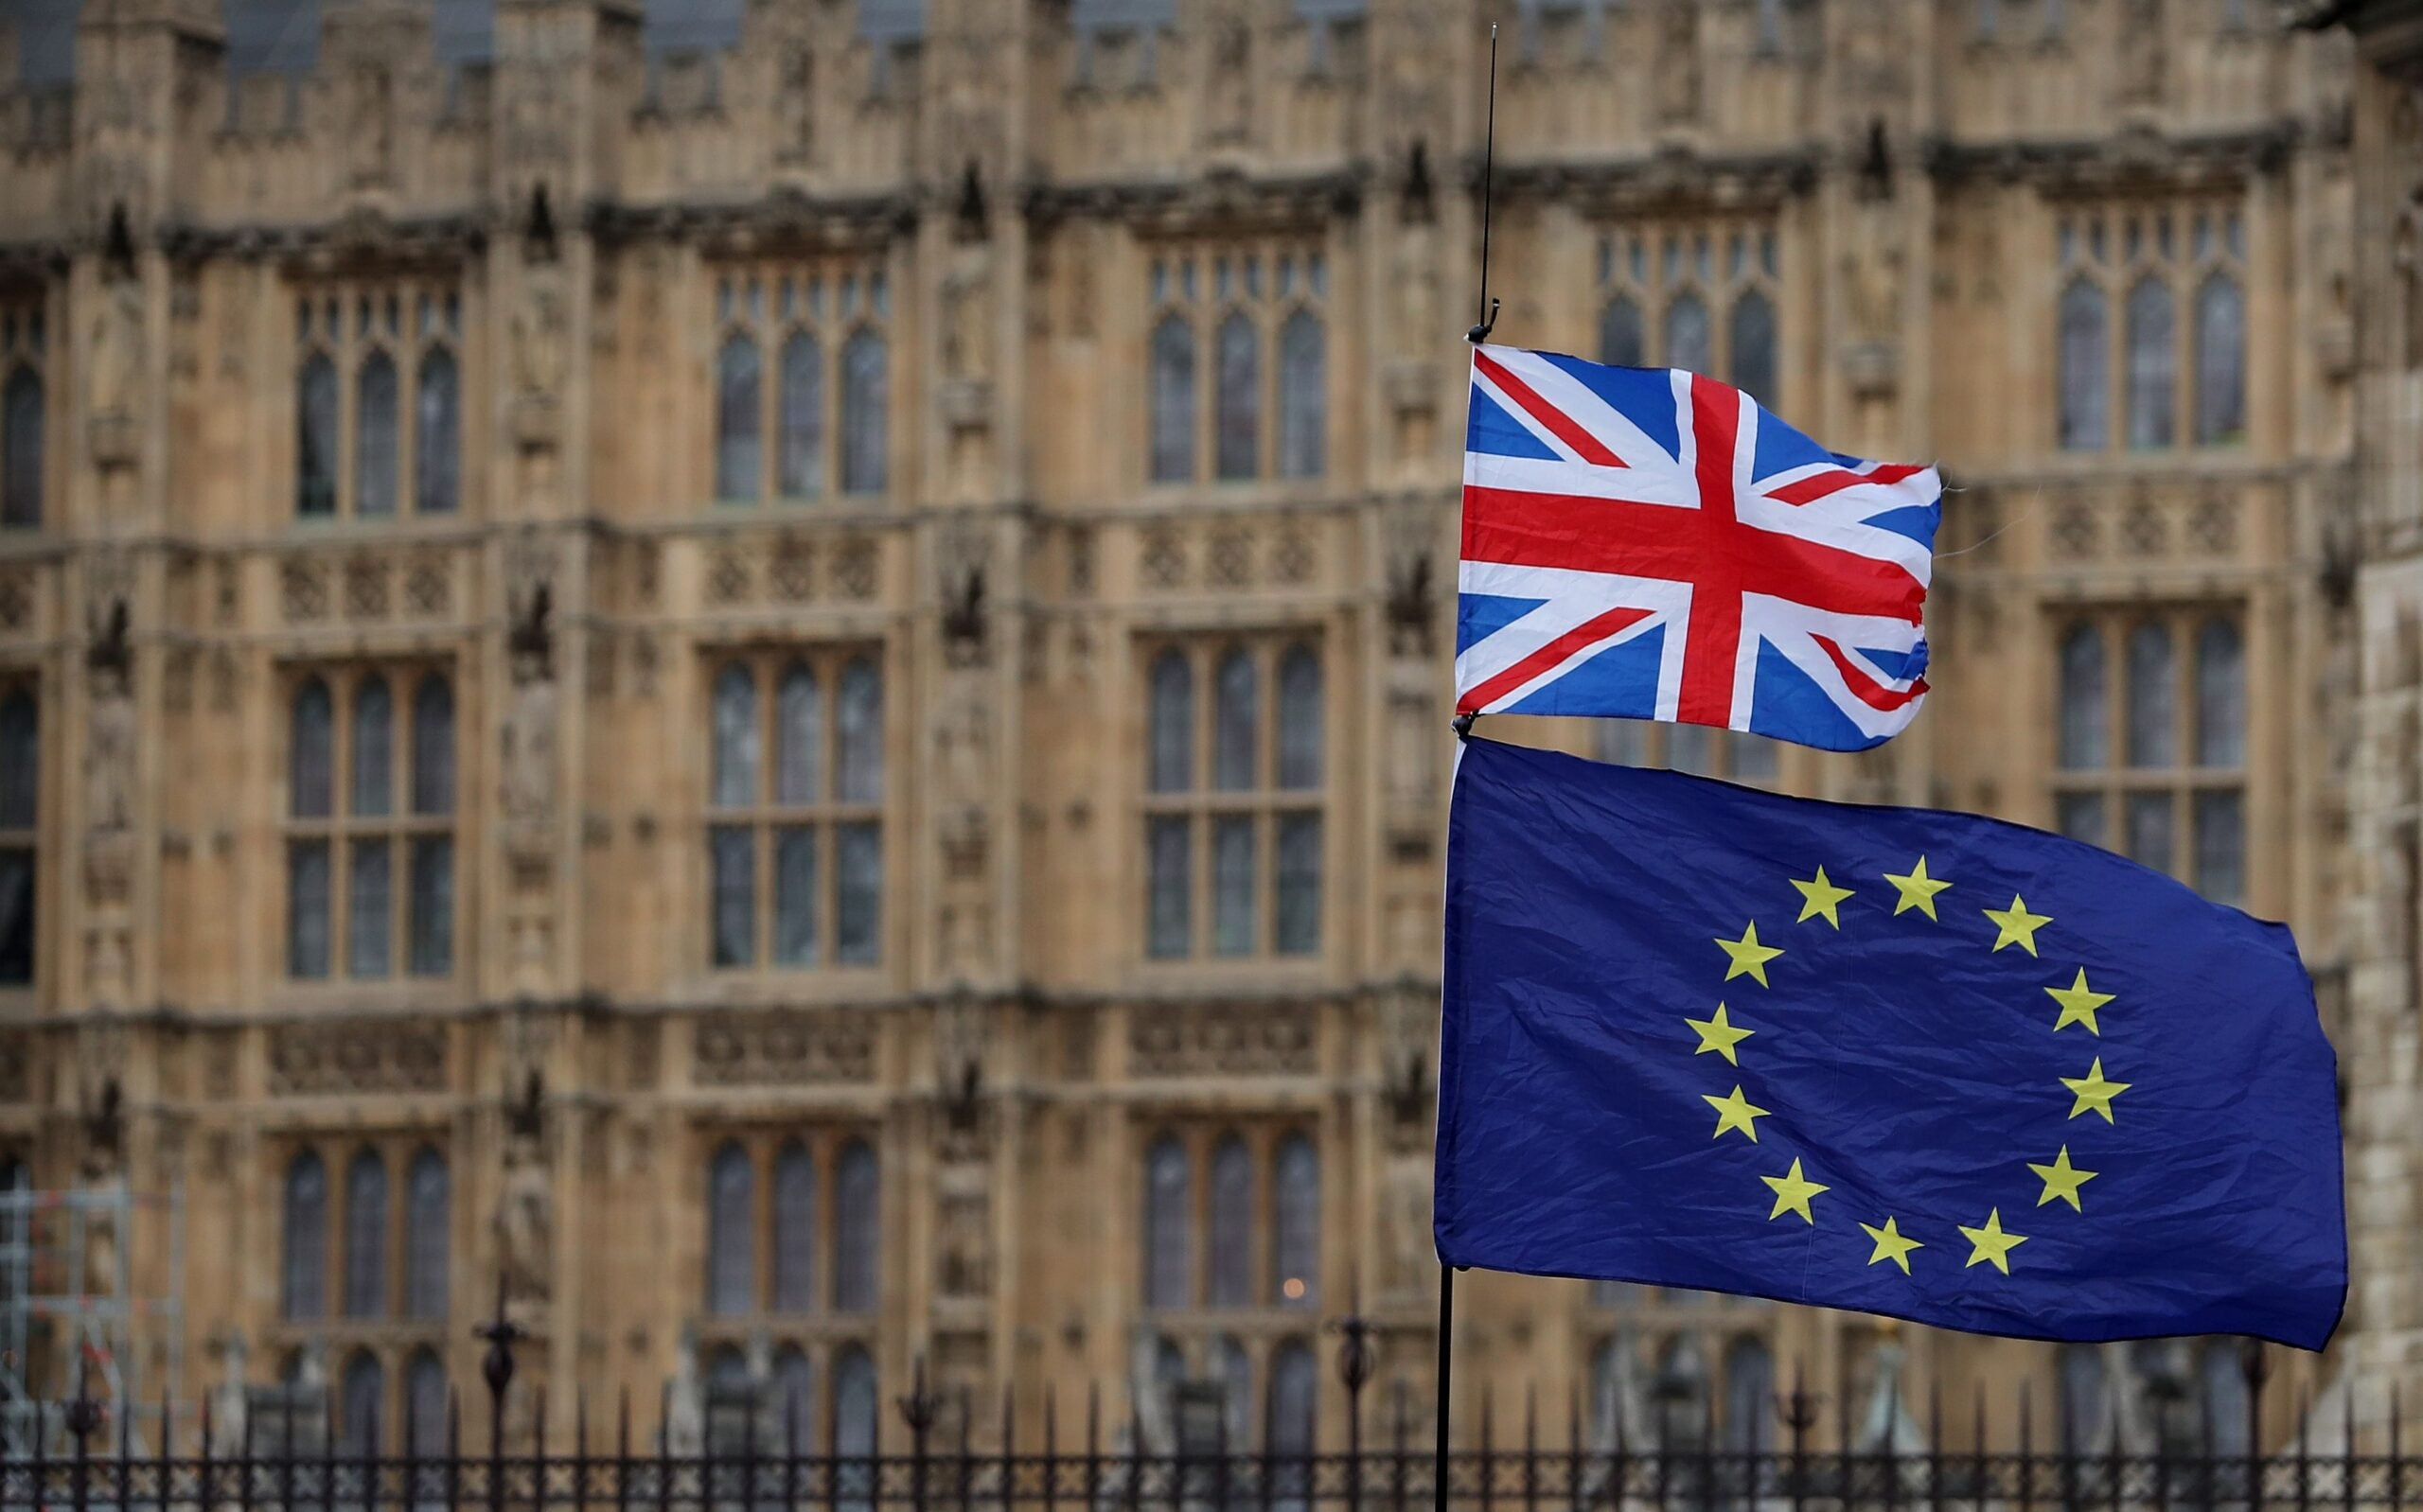 Beyond Brexit: what next for Britain's model of democratic capitalism?